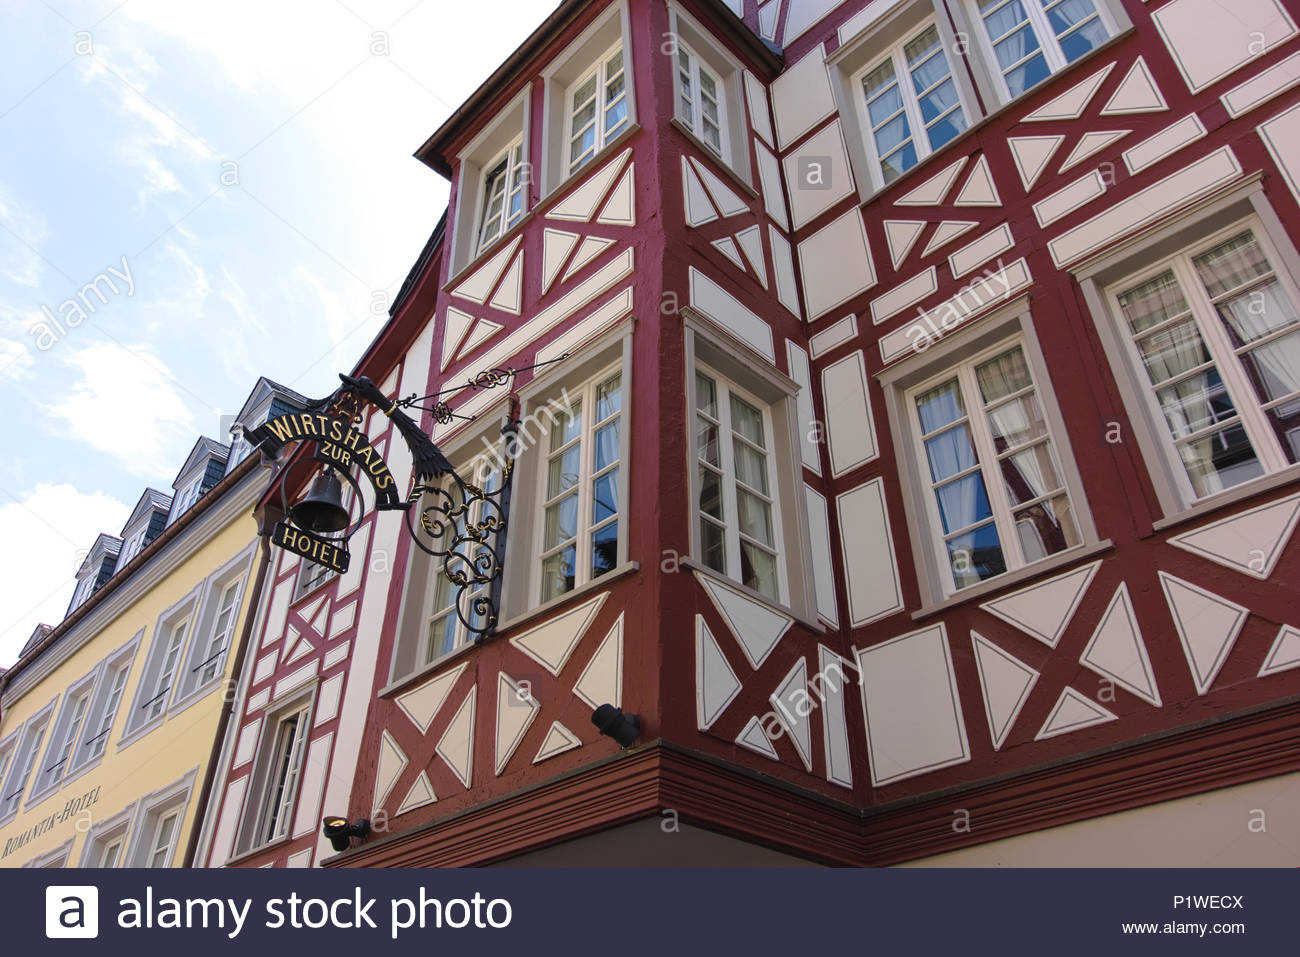 Beautiful half-timbered houses in Trier, Germany. Trier may be the oldest city in Germany. Wunderschöne Fachwerkhäuser in Trier, Deutschland. - Stock Image